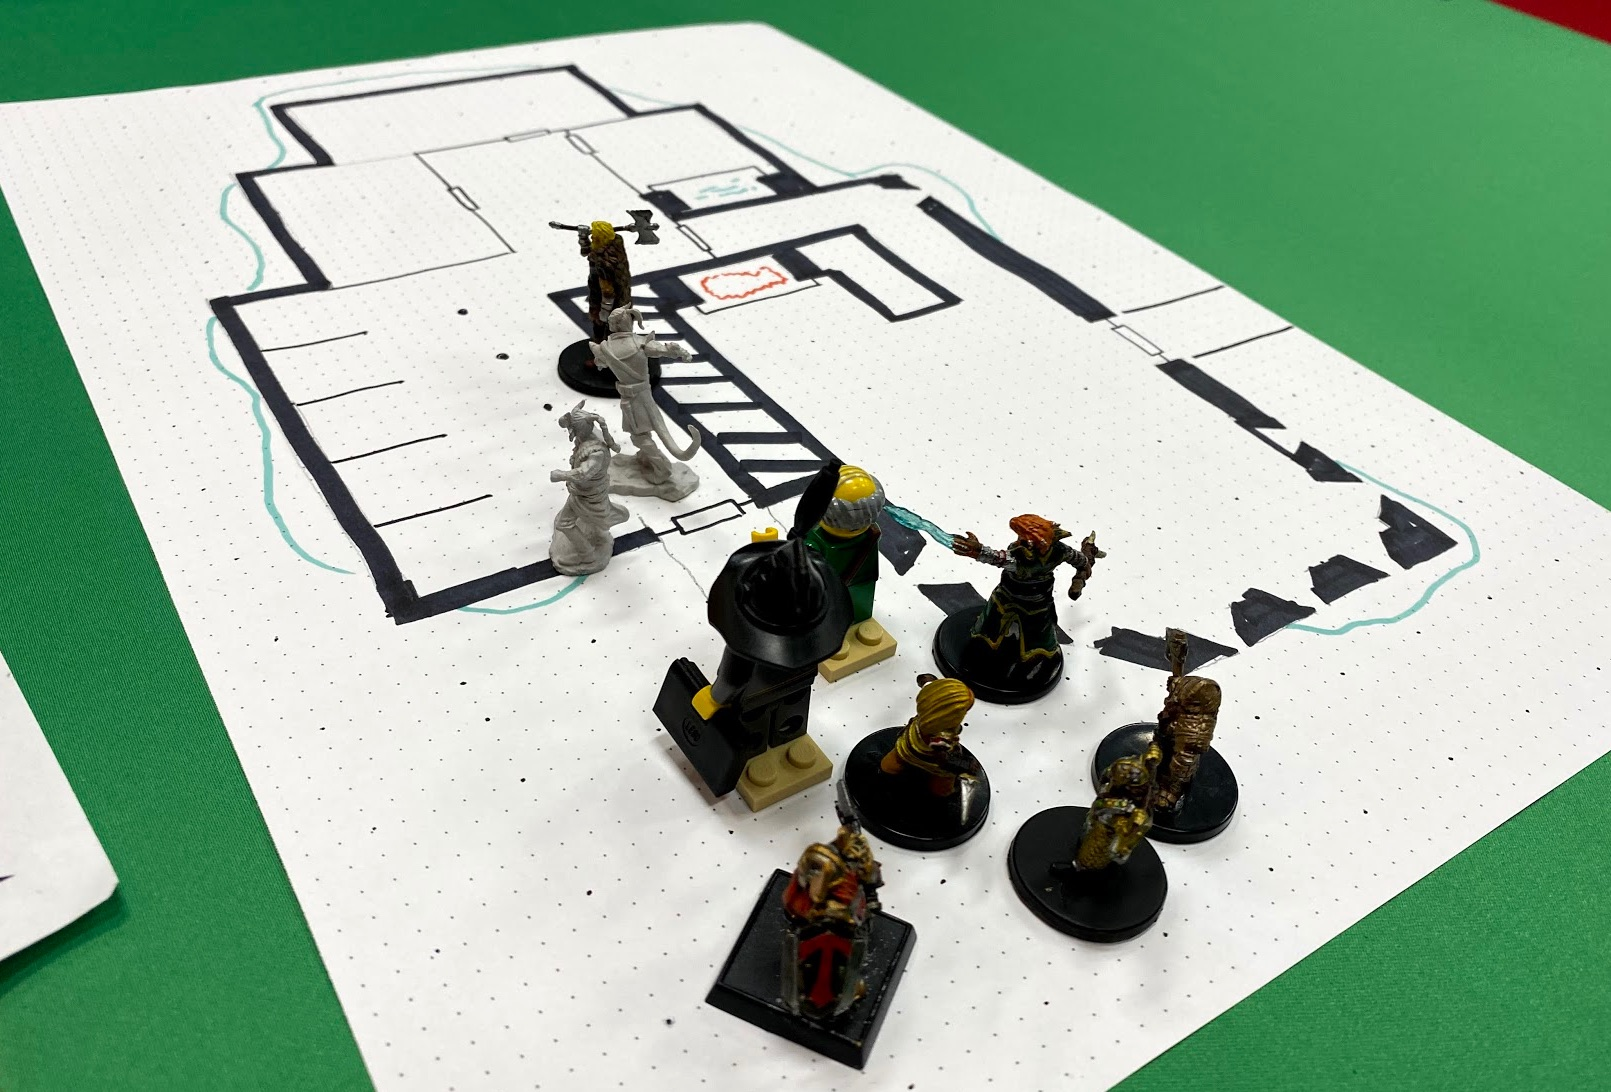 Player minis entering a dungeon